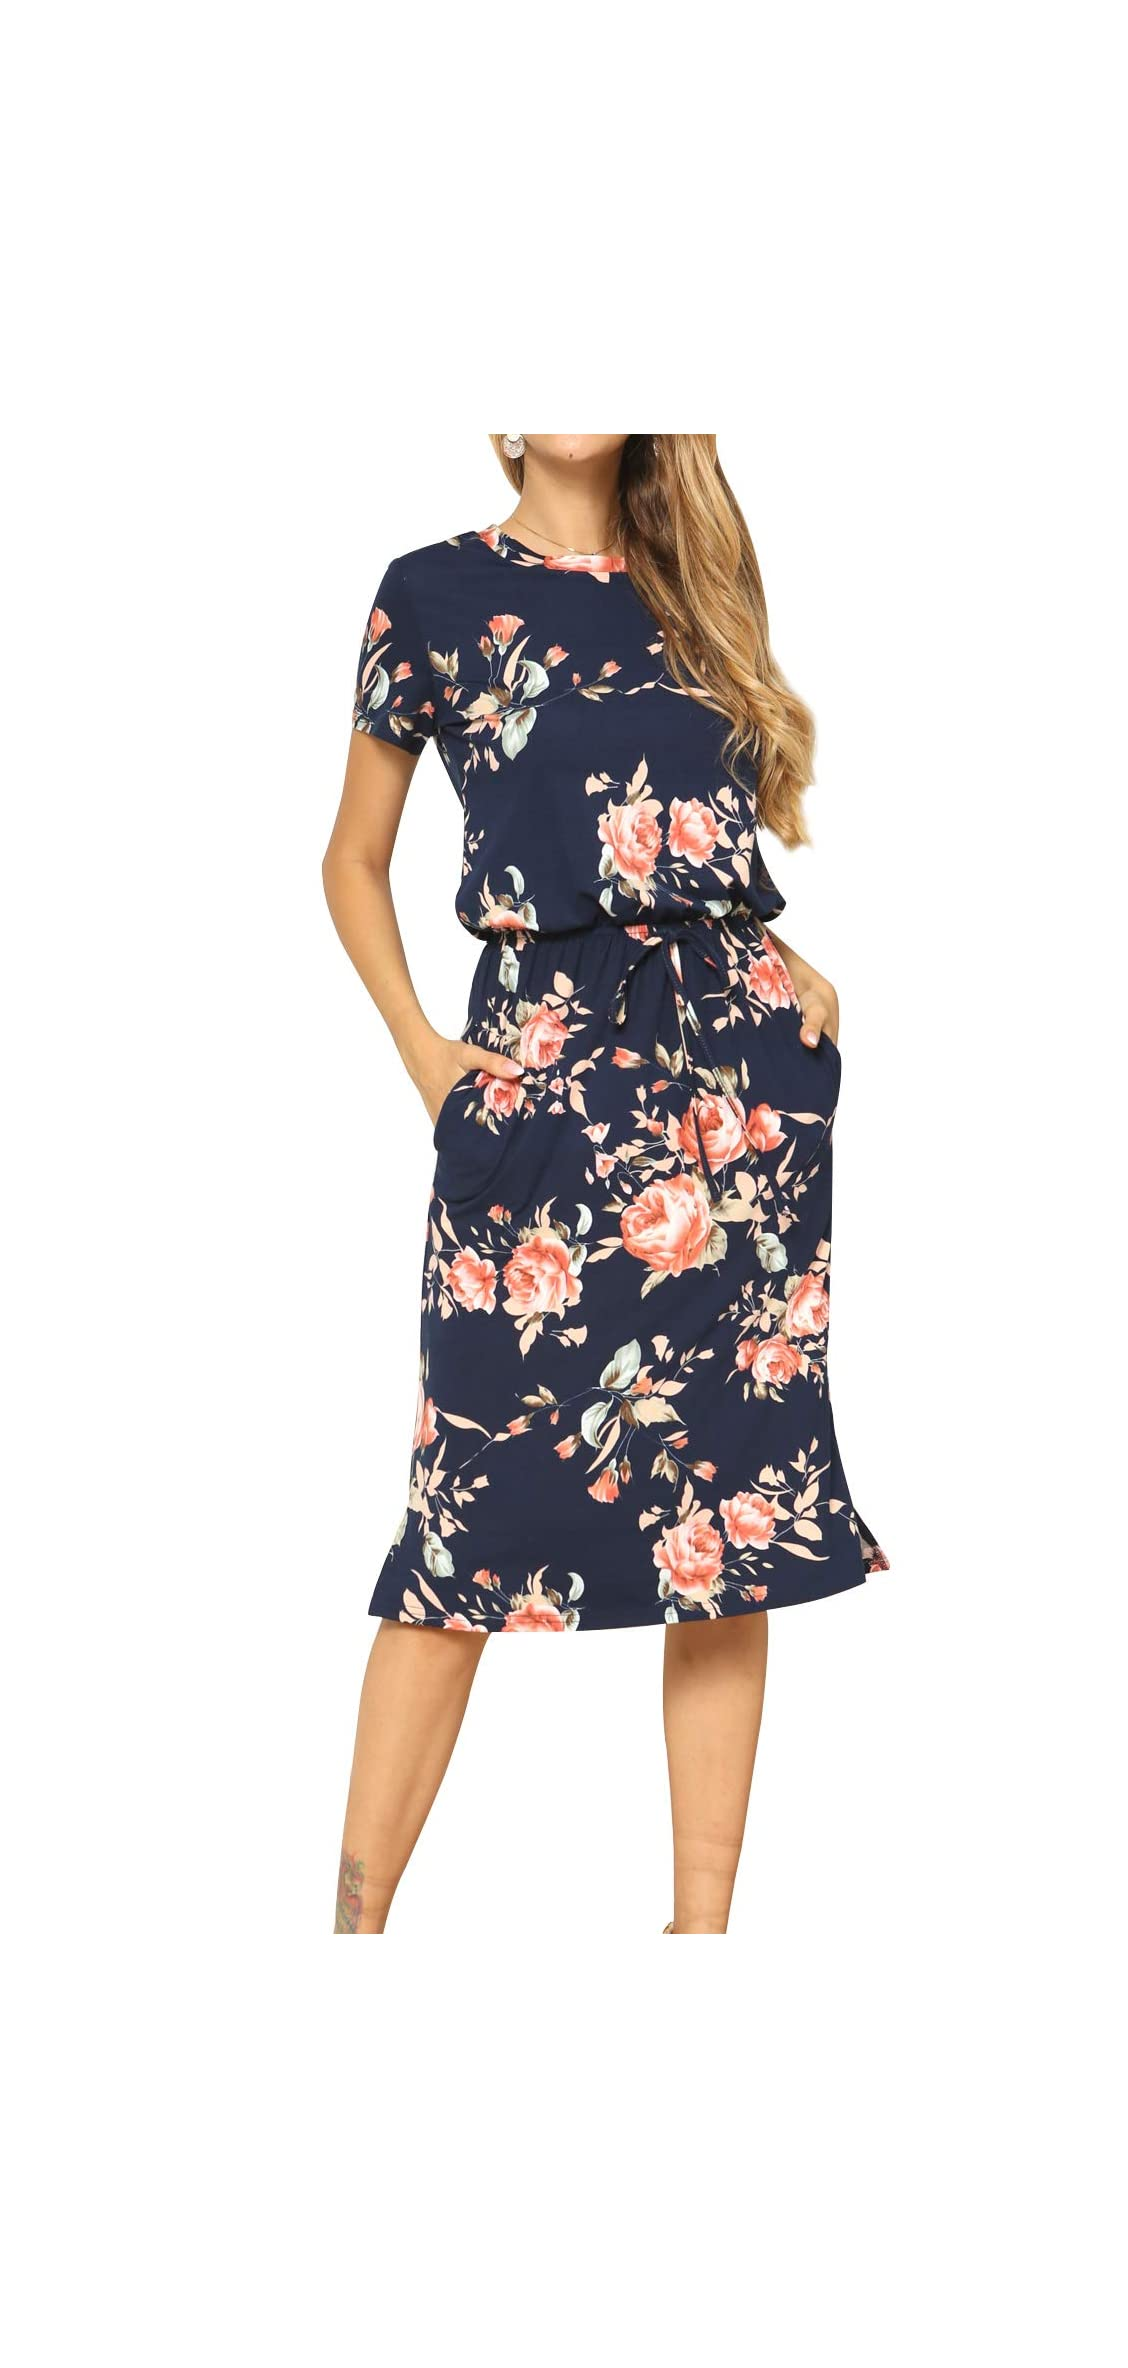 Women's Modest Work Casual Midi Dress With Pockets